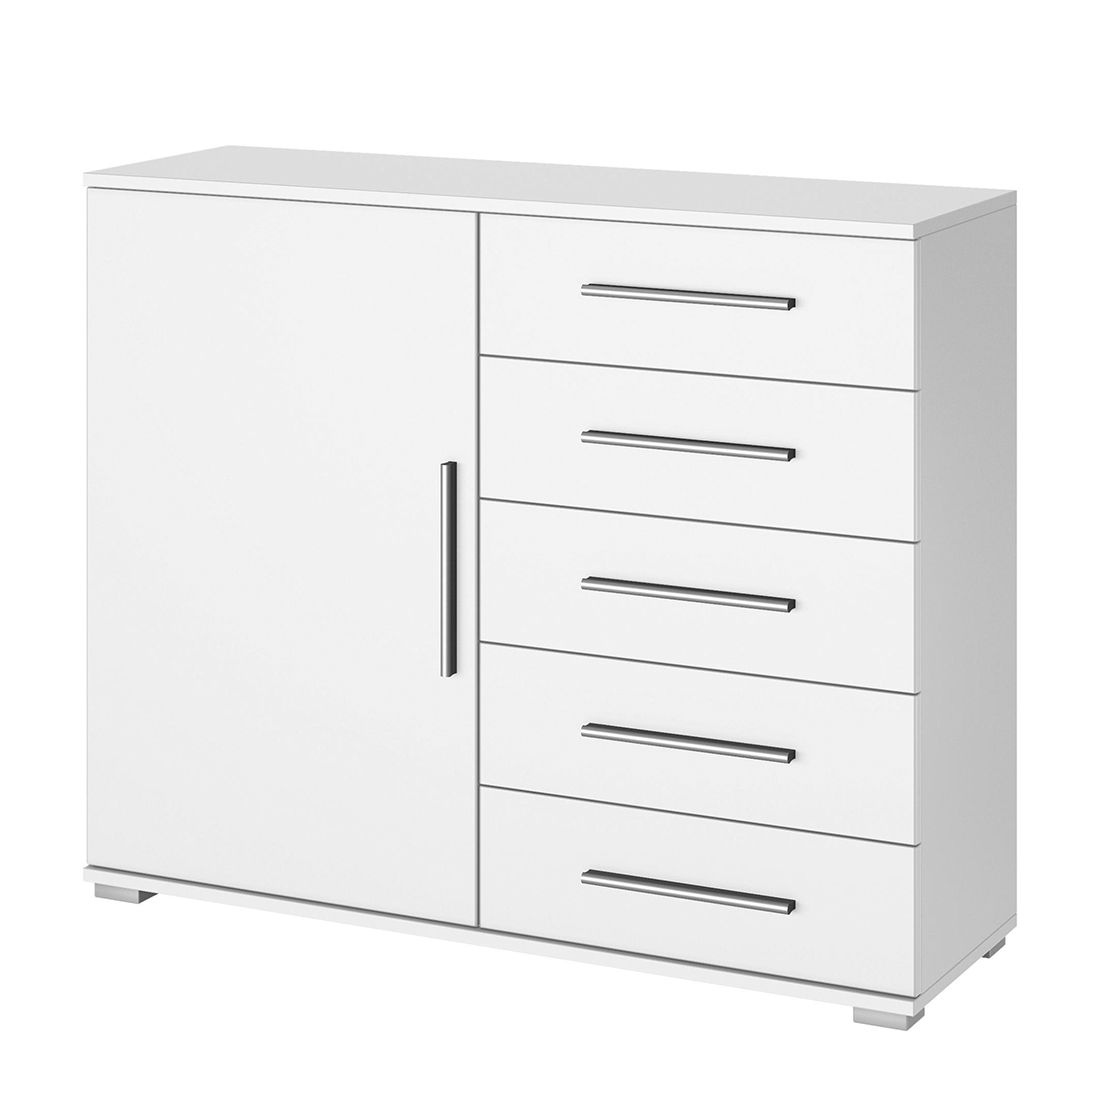 Commode Quadra V - Blanc alpin, Rauch Packs